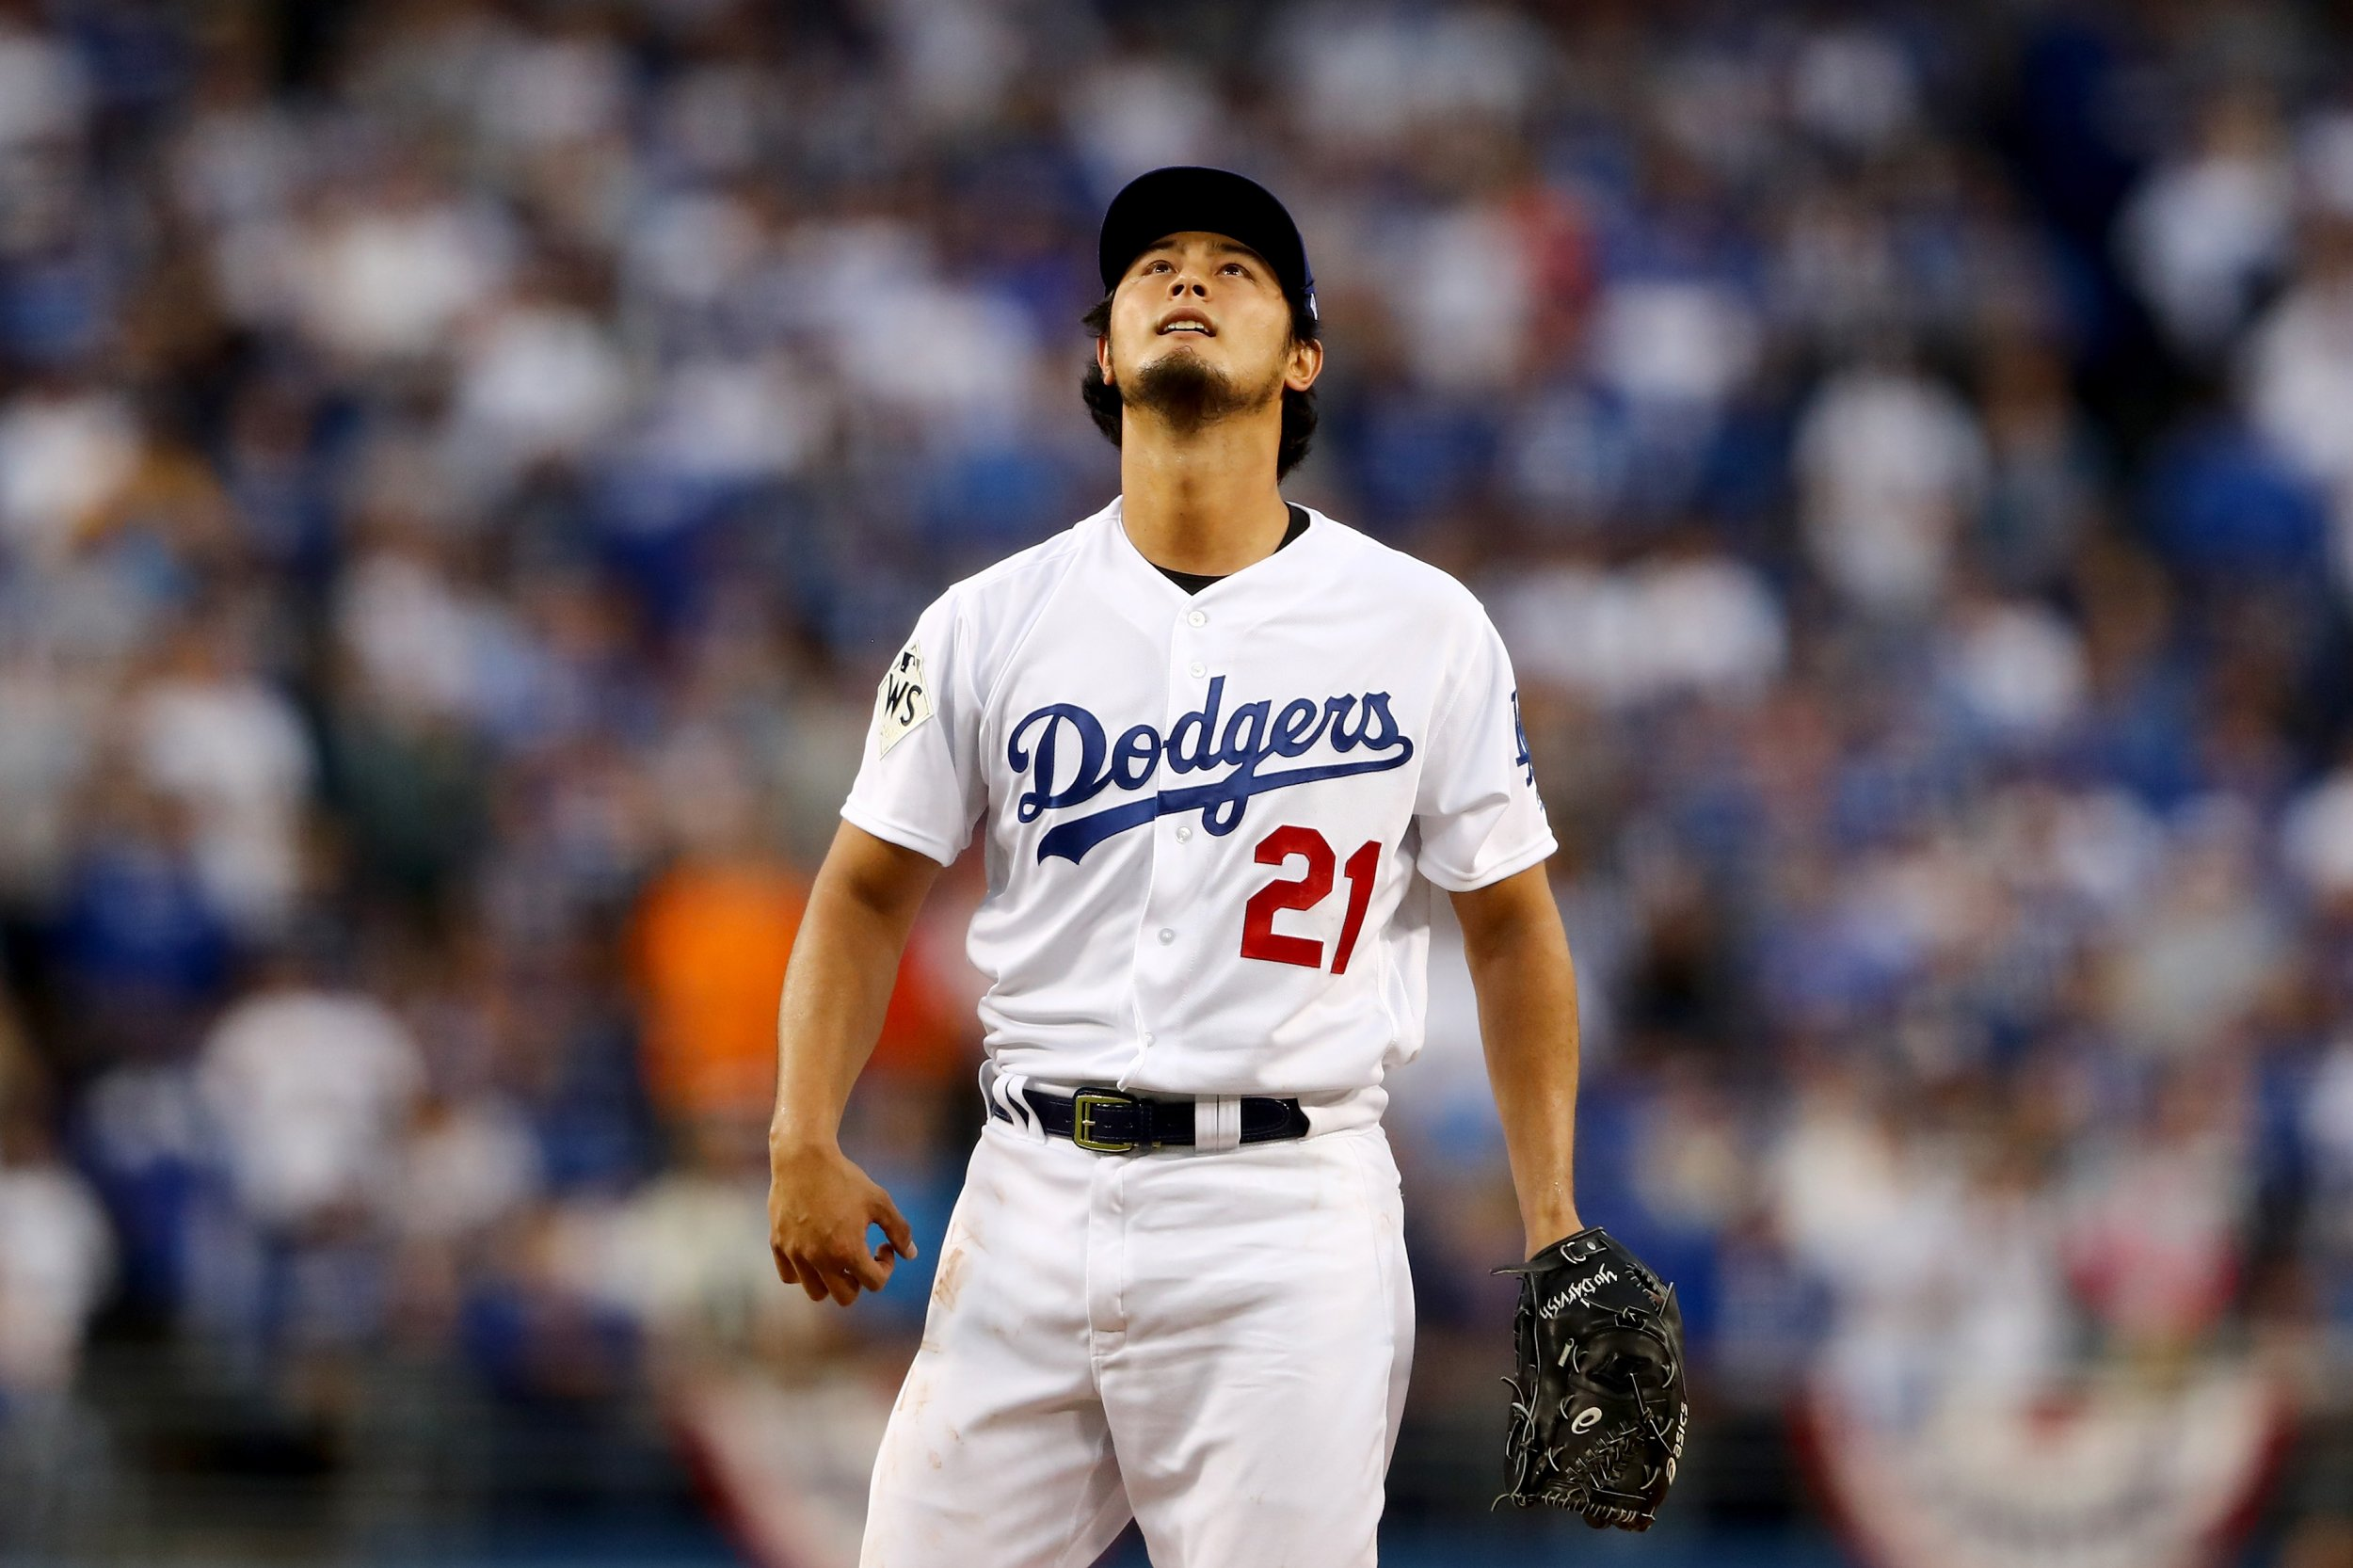 L.A. Dodgers pitcher Yu Darvish.